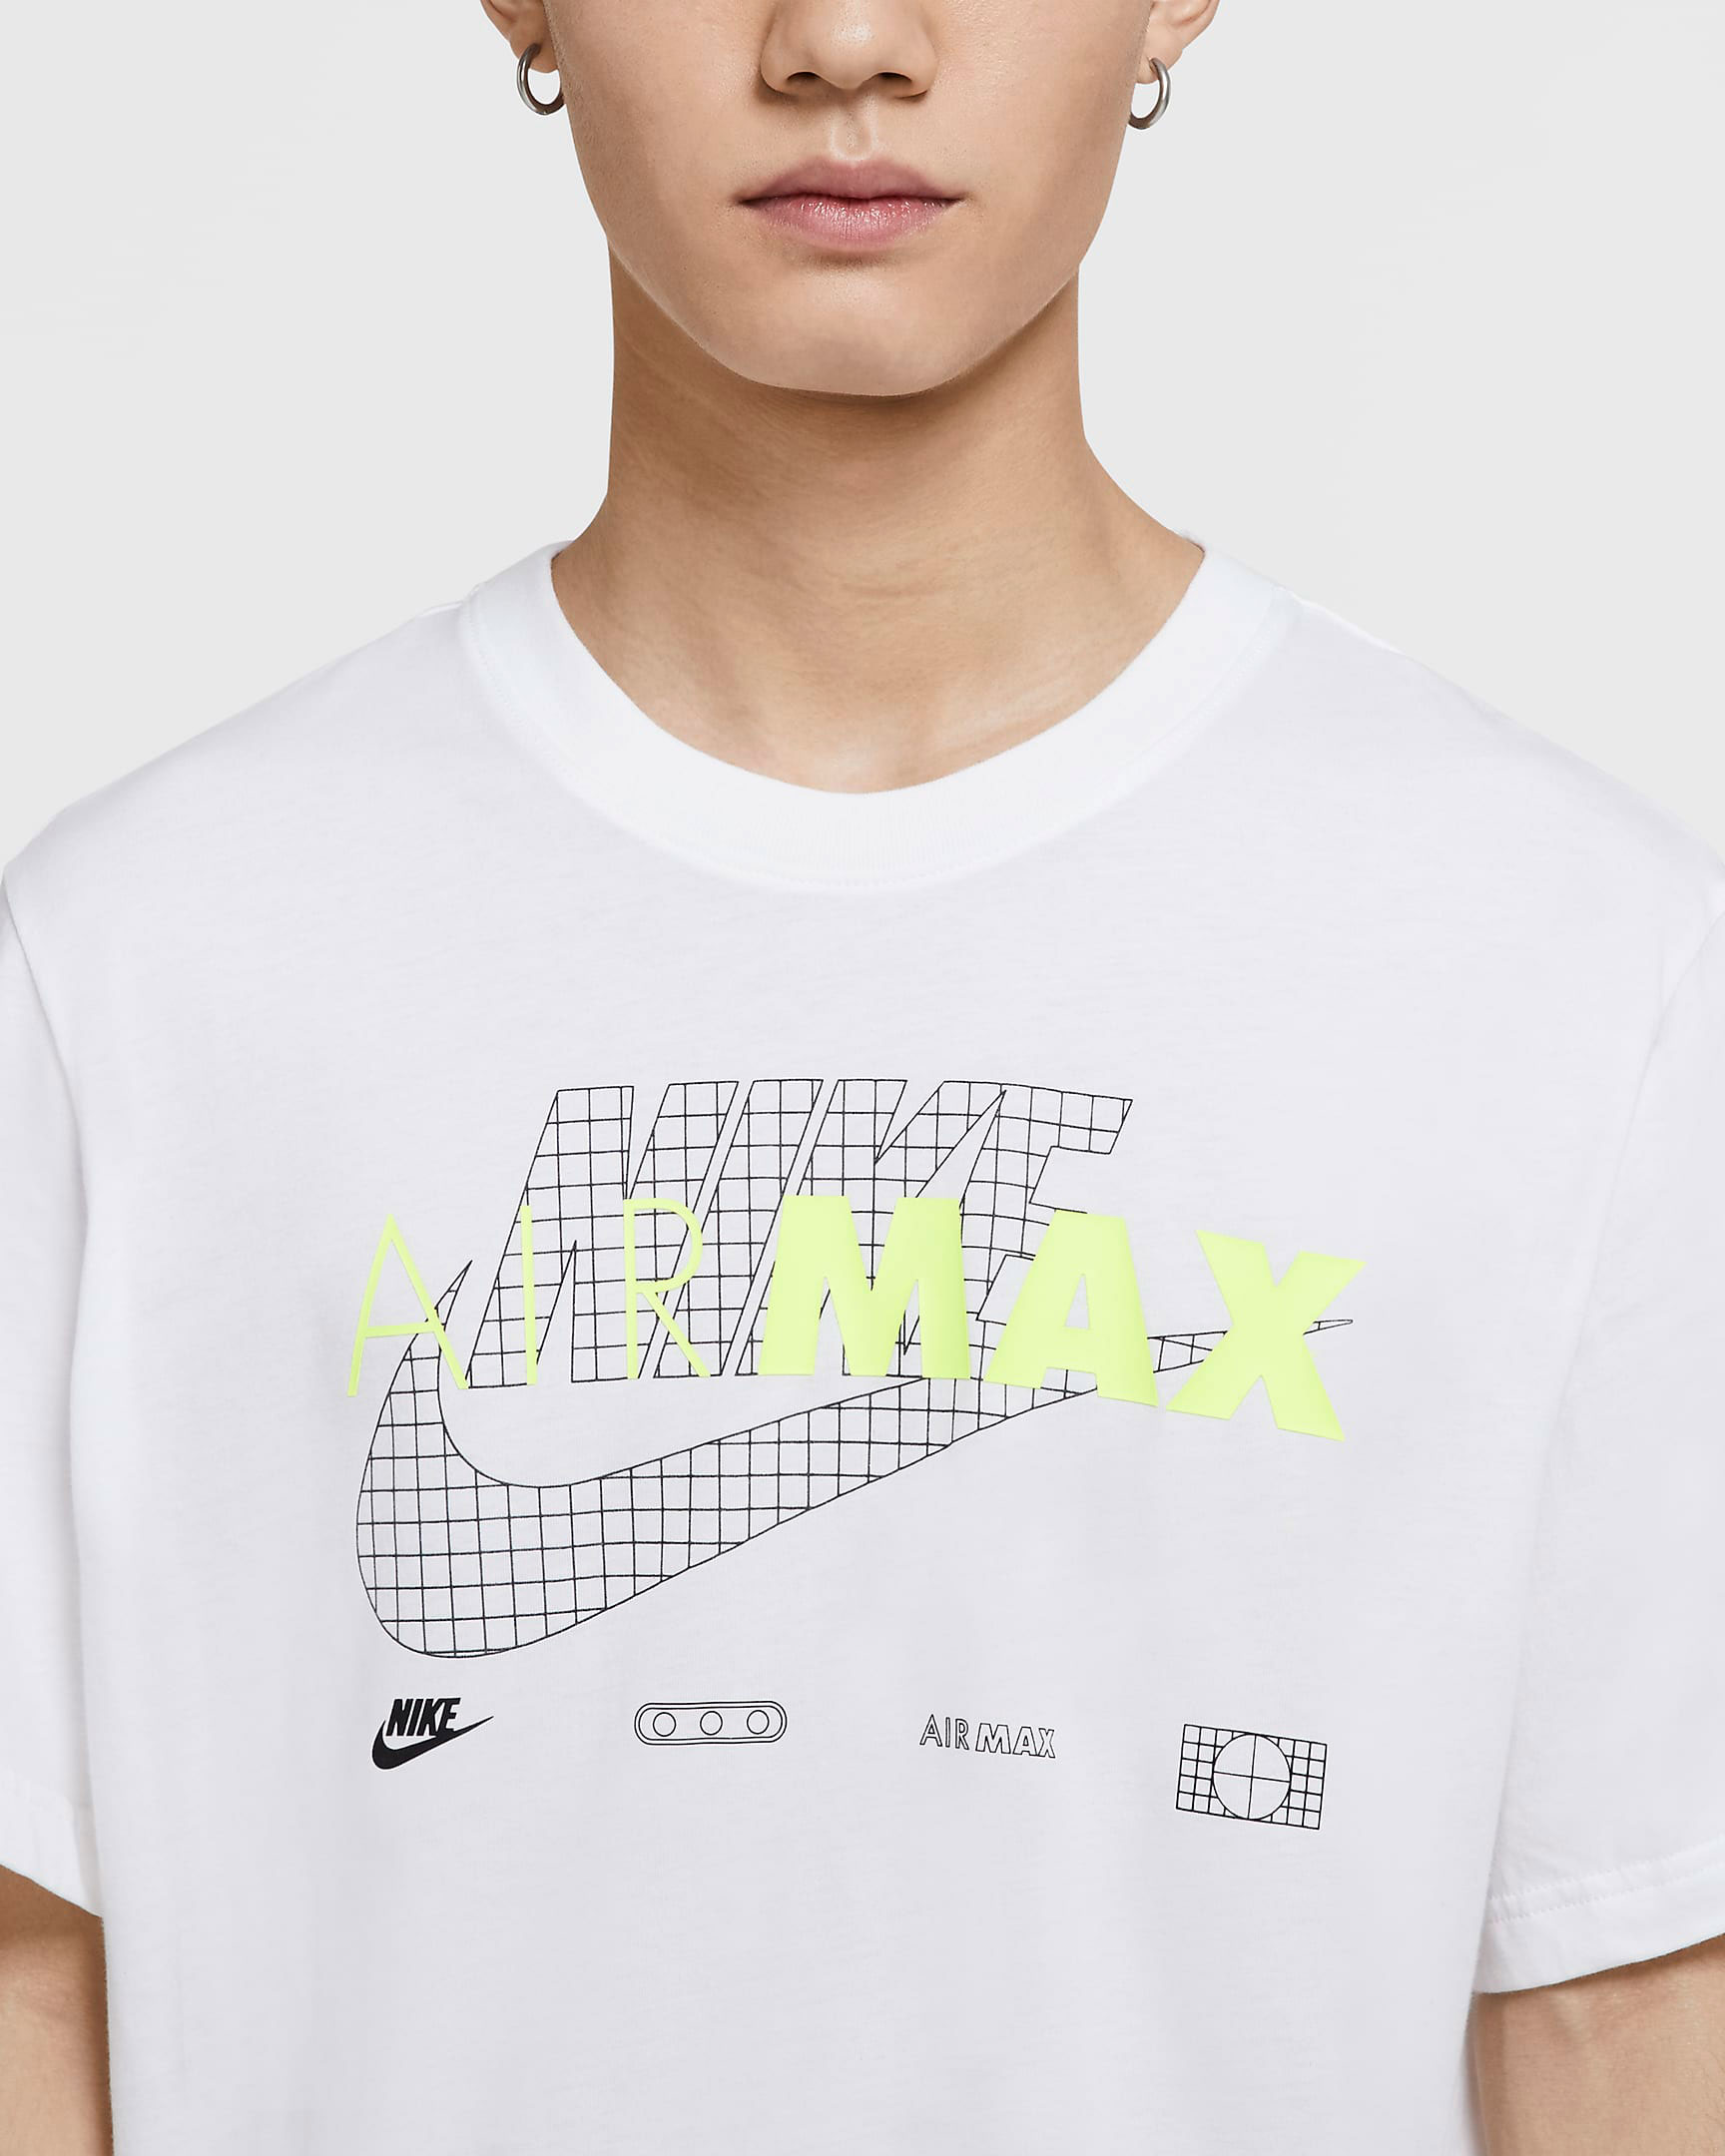 nike-air-max-95-neon-t-shirt-match-white-volt